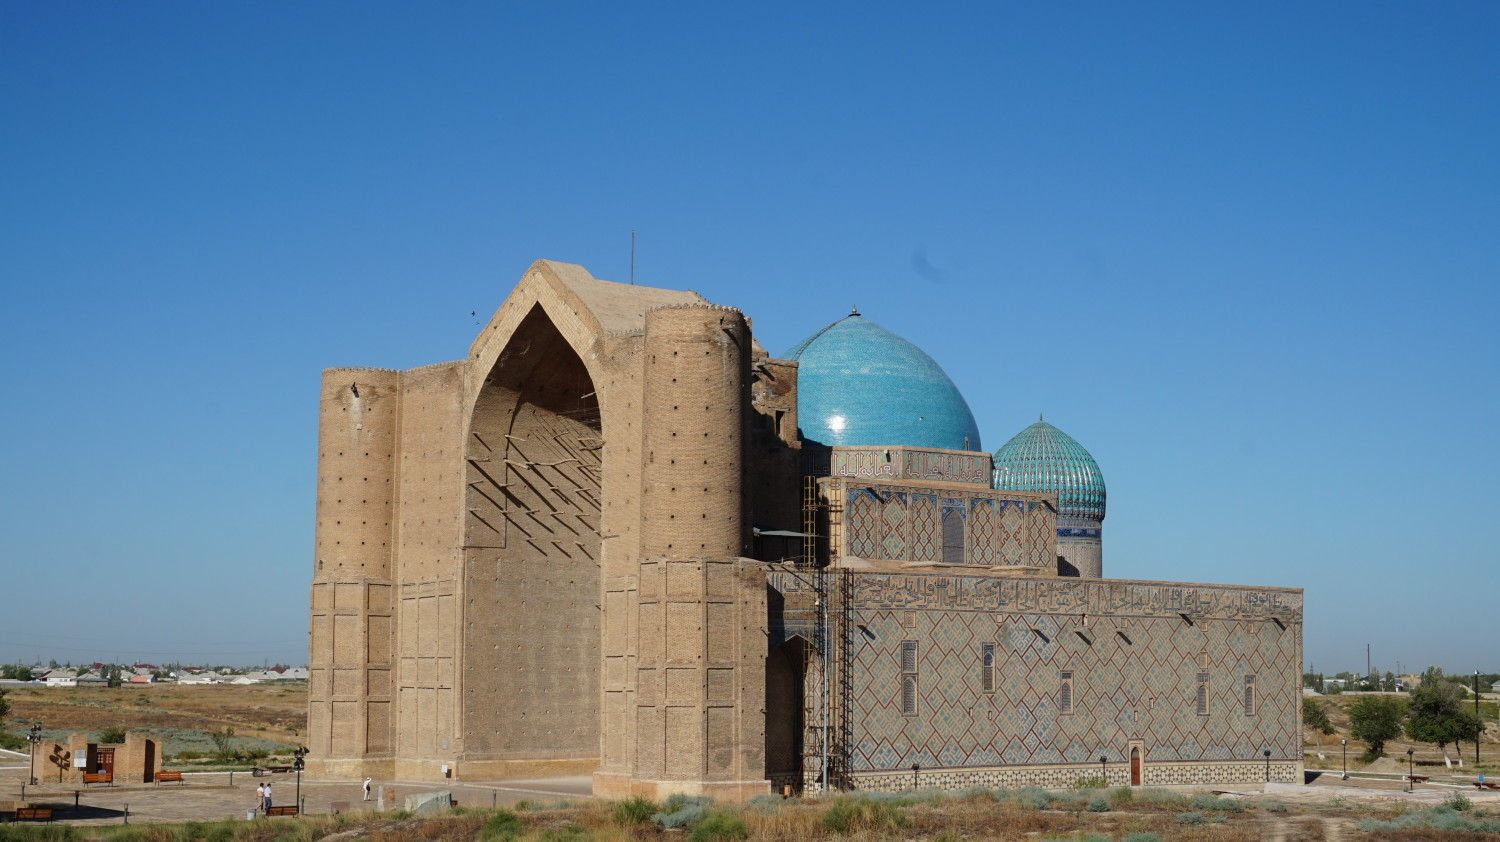 Turkestan Mausoleum